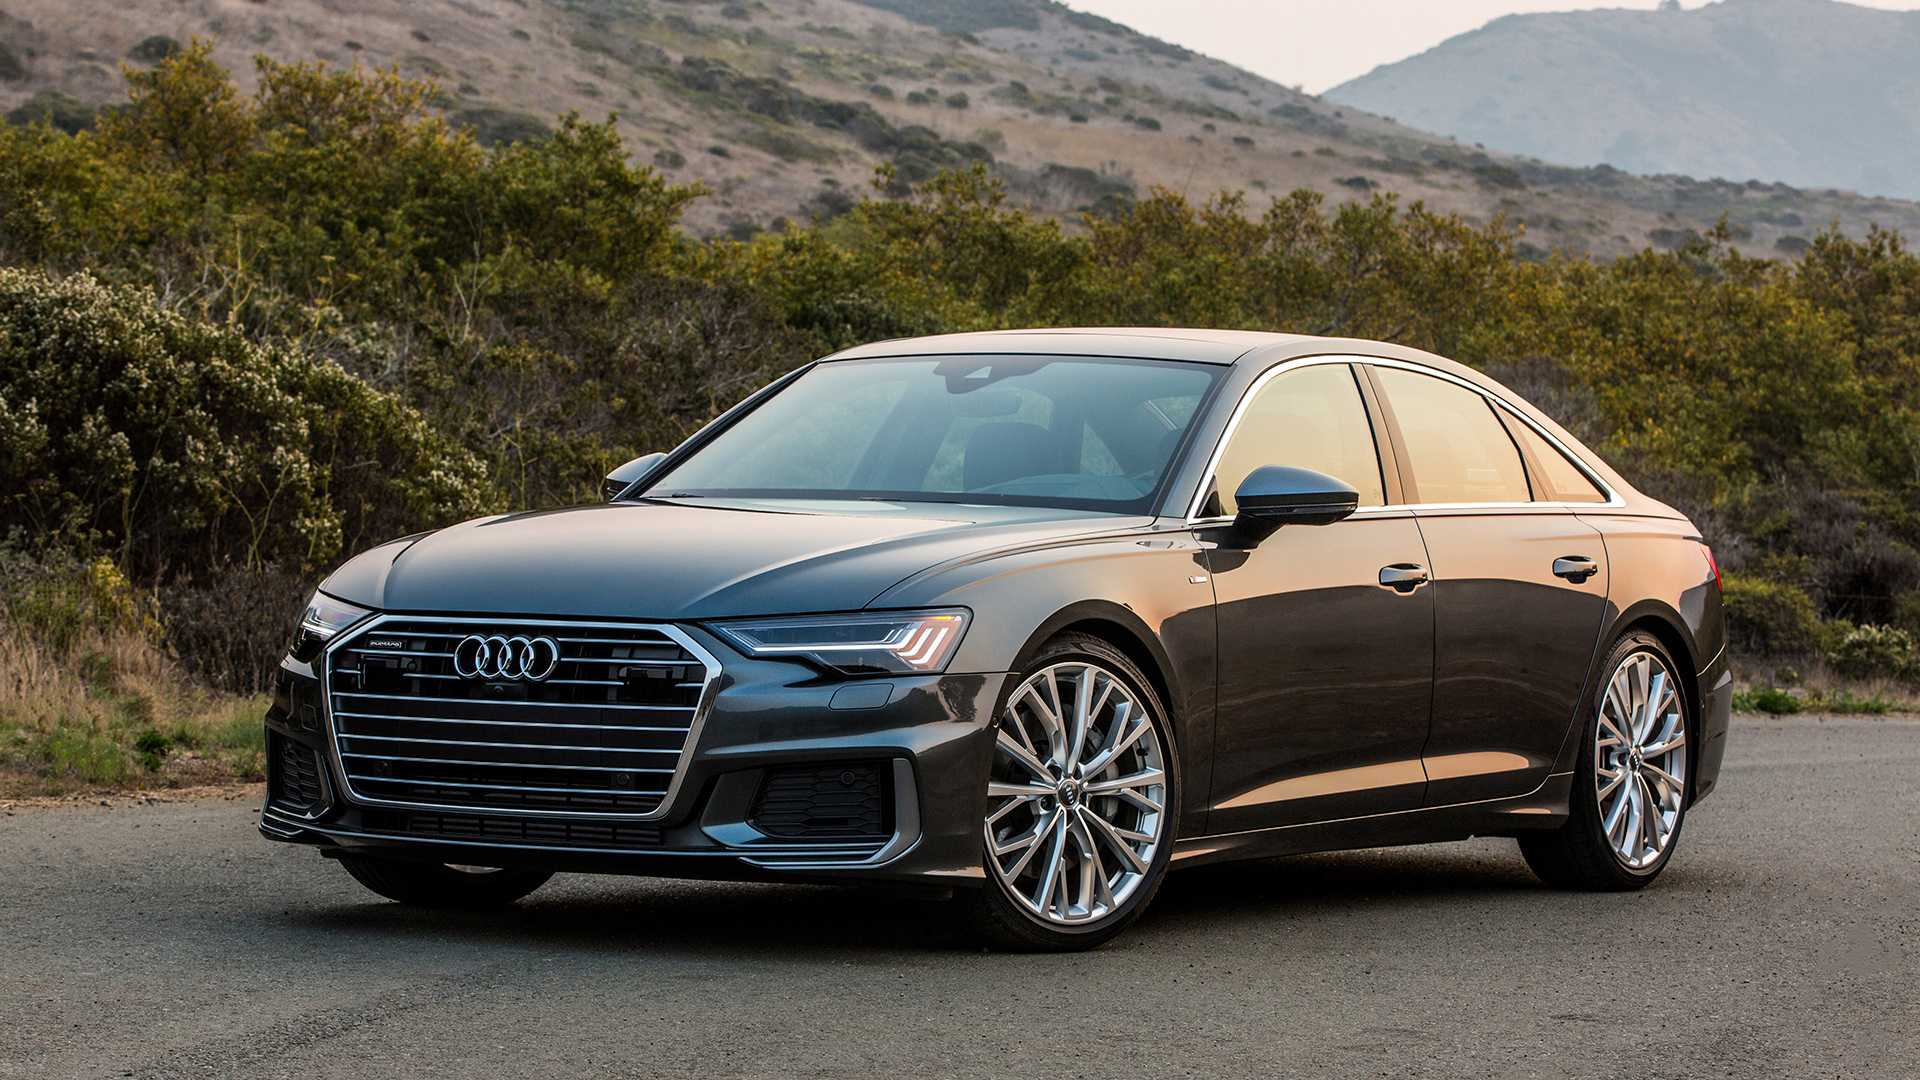 54 The Best 2019 The Audi A6 Exterior